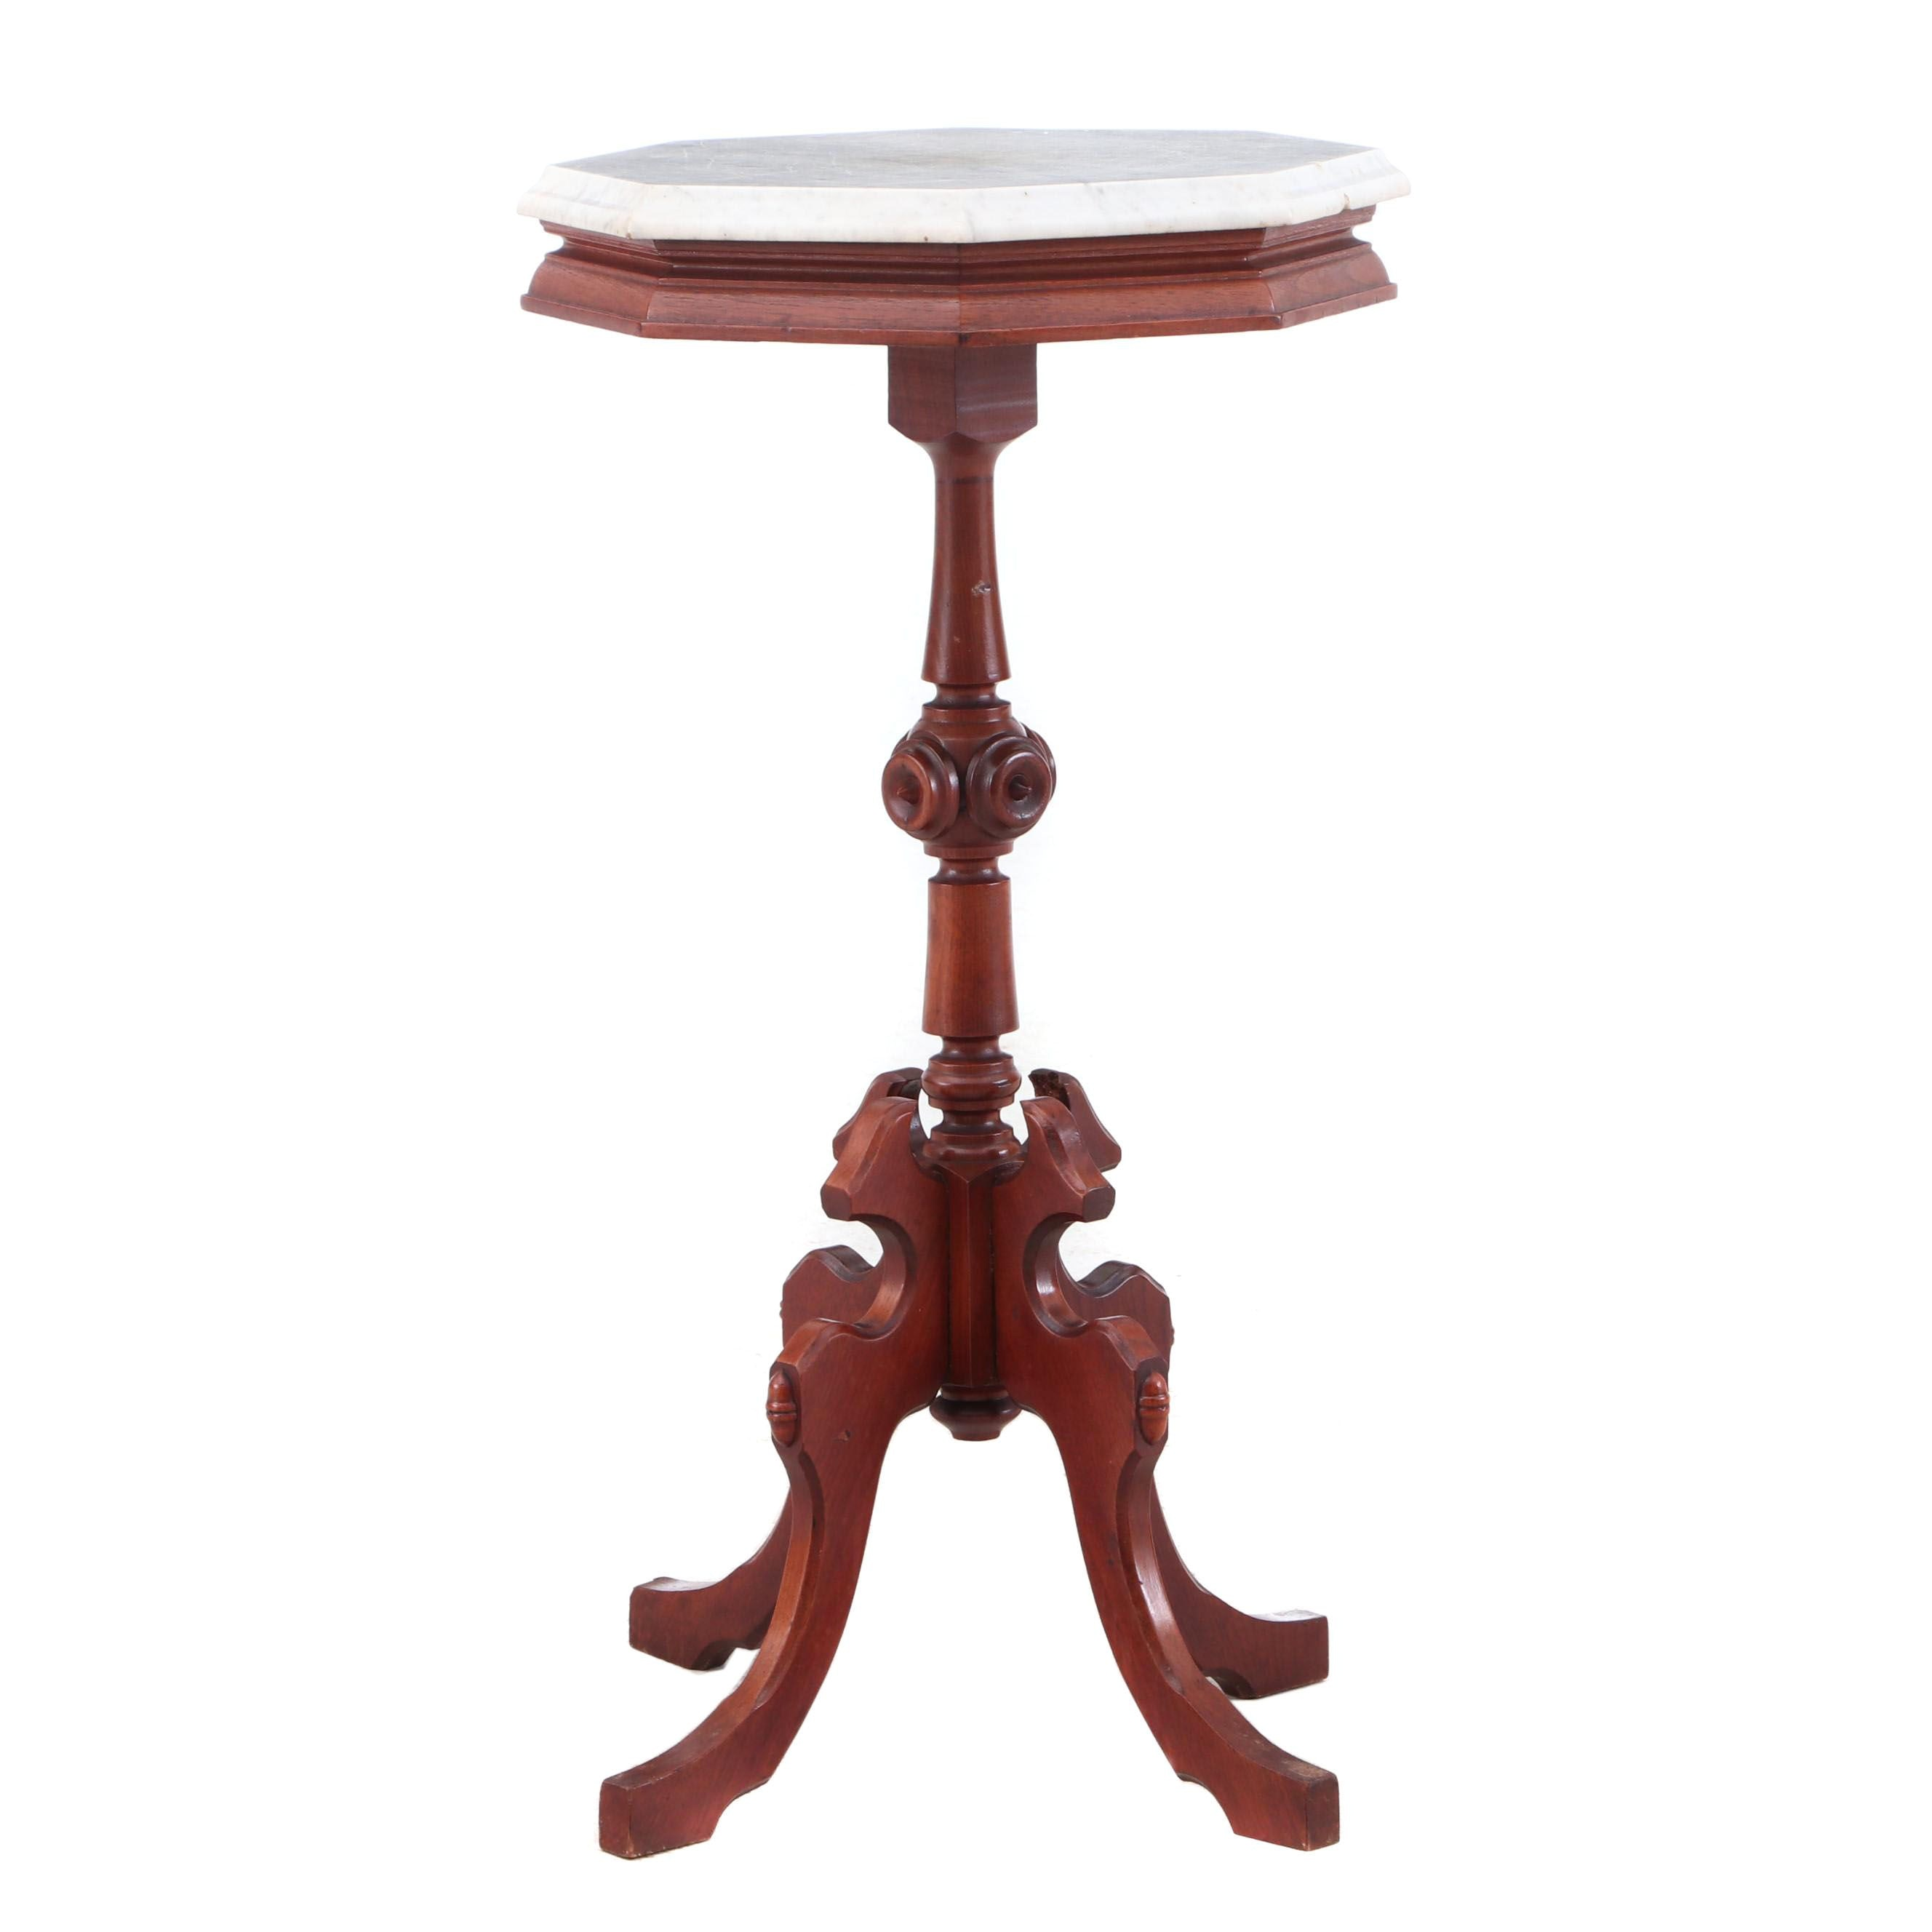 Victorian Walnut Pedestal Side Table with Beveled White Marble Top